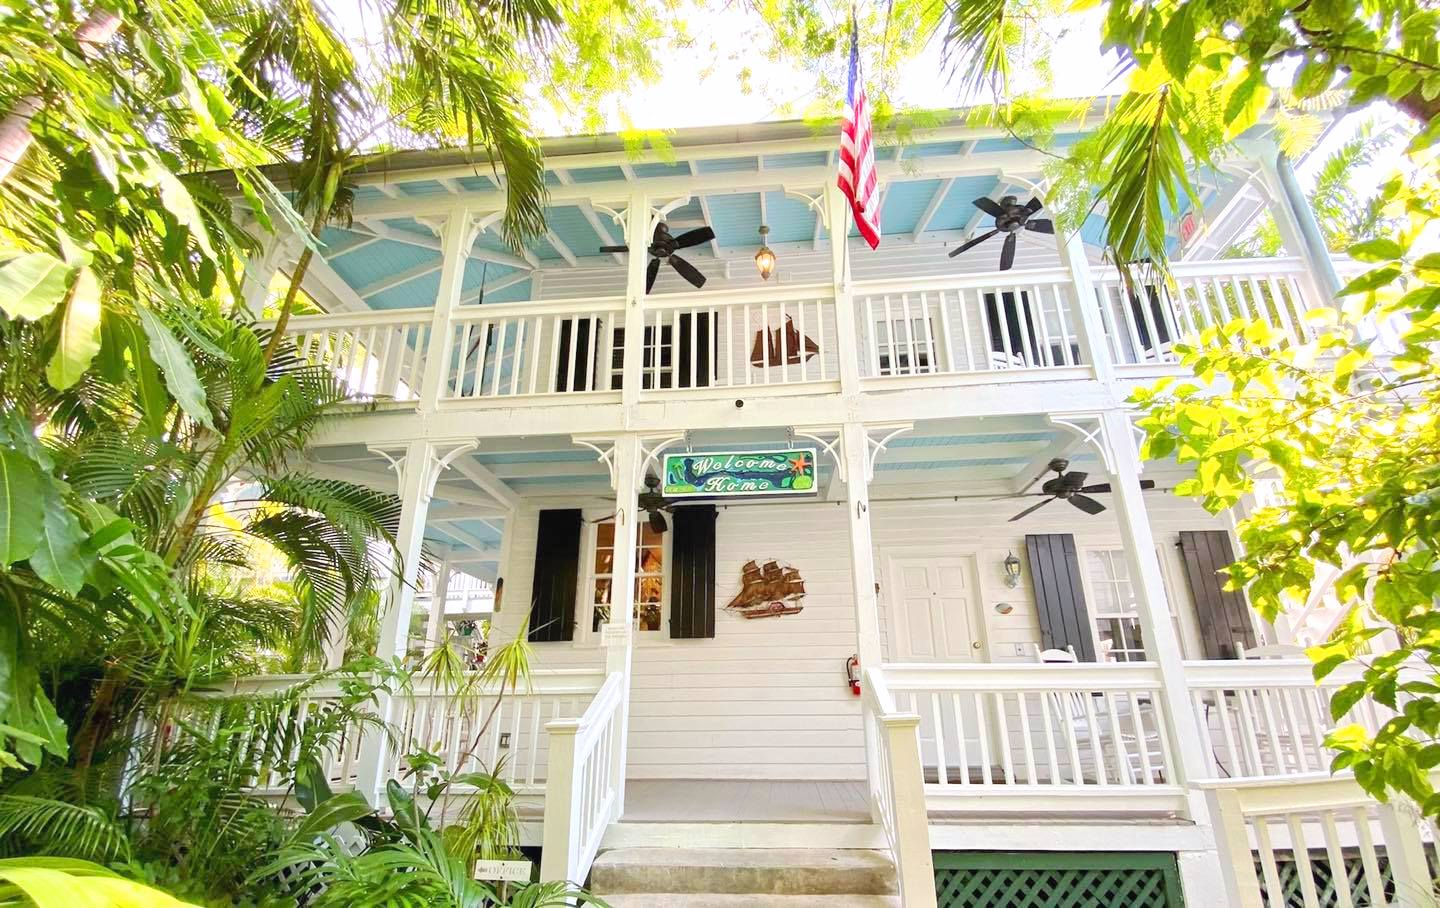 Entrance to a guesthouse in key west porch with sun shining lush tropical foliage